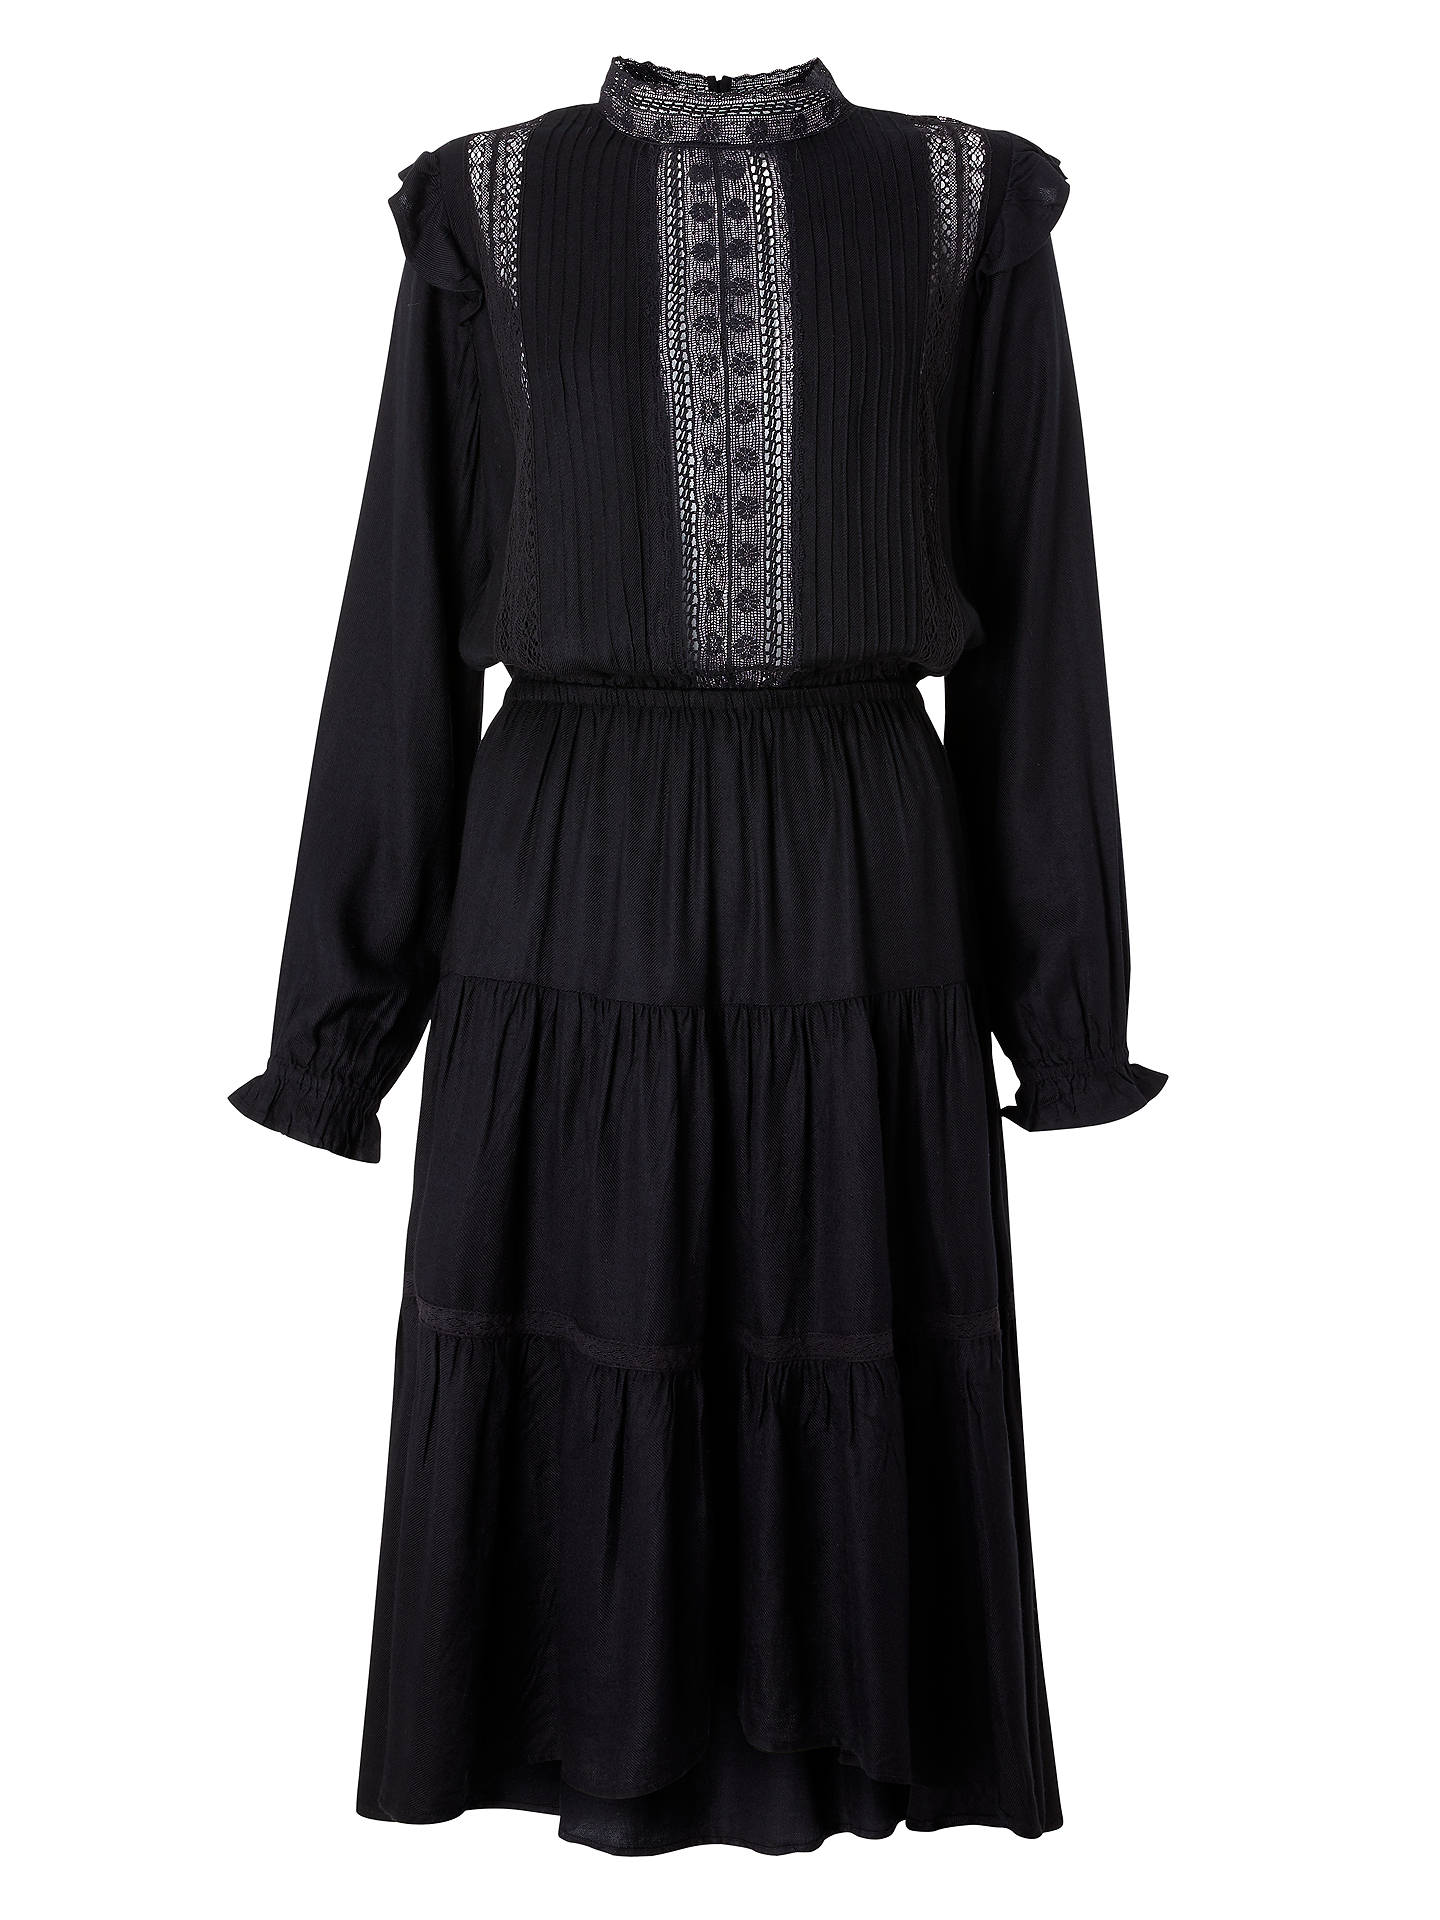 Buy Swildens Tamtam Dress, Black, 12 Online at johnlewis.com